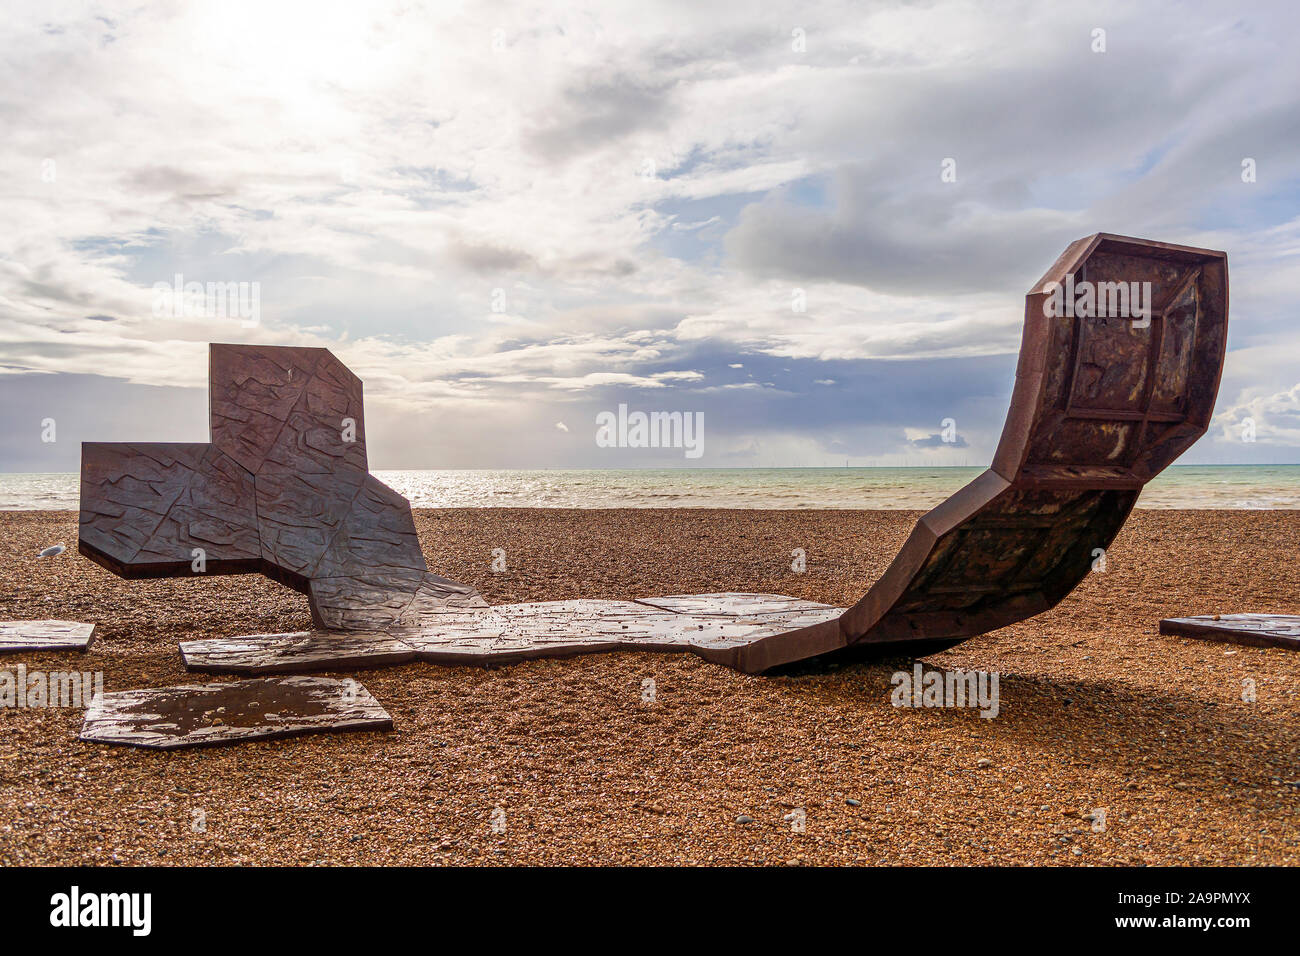 Brighton and Hove, East Sussex, UK - November 4, 2019: Passacaglia sculpture by Charles Hadcock on the beach in Brighton, UK. Passacaglia is a huge, c Stock Photo